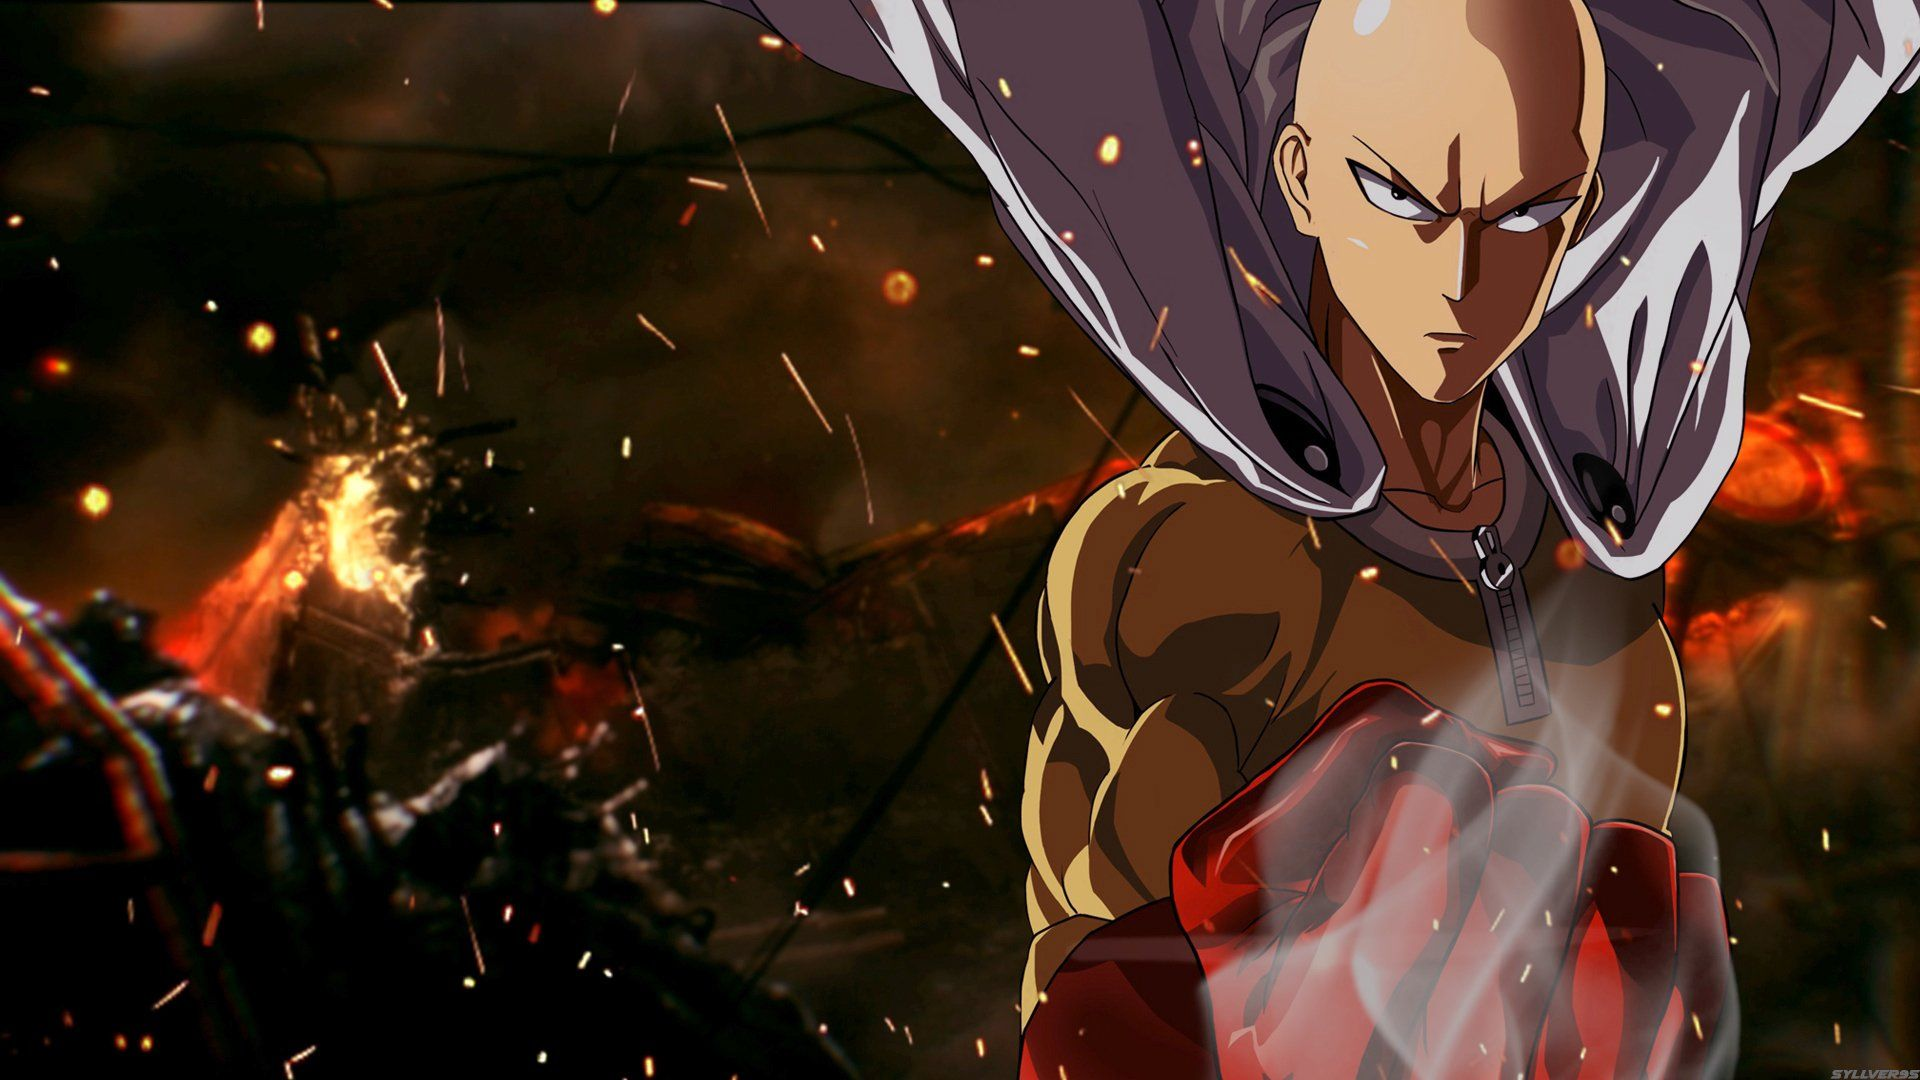 Read One Punch Man Manga All Volumes And Chapters Online In High Quality For Free Only On Www Shonenj In 2020 Anime Wallpaper Saitama One Punch Man Hd Anime Wallpapers